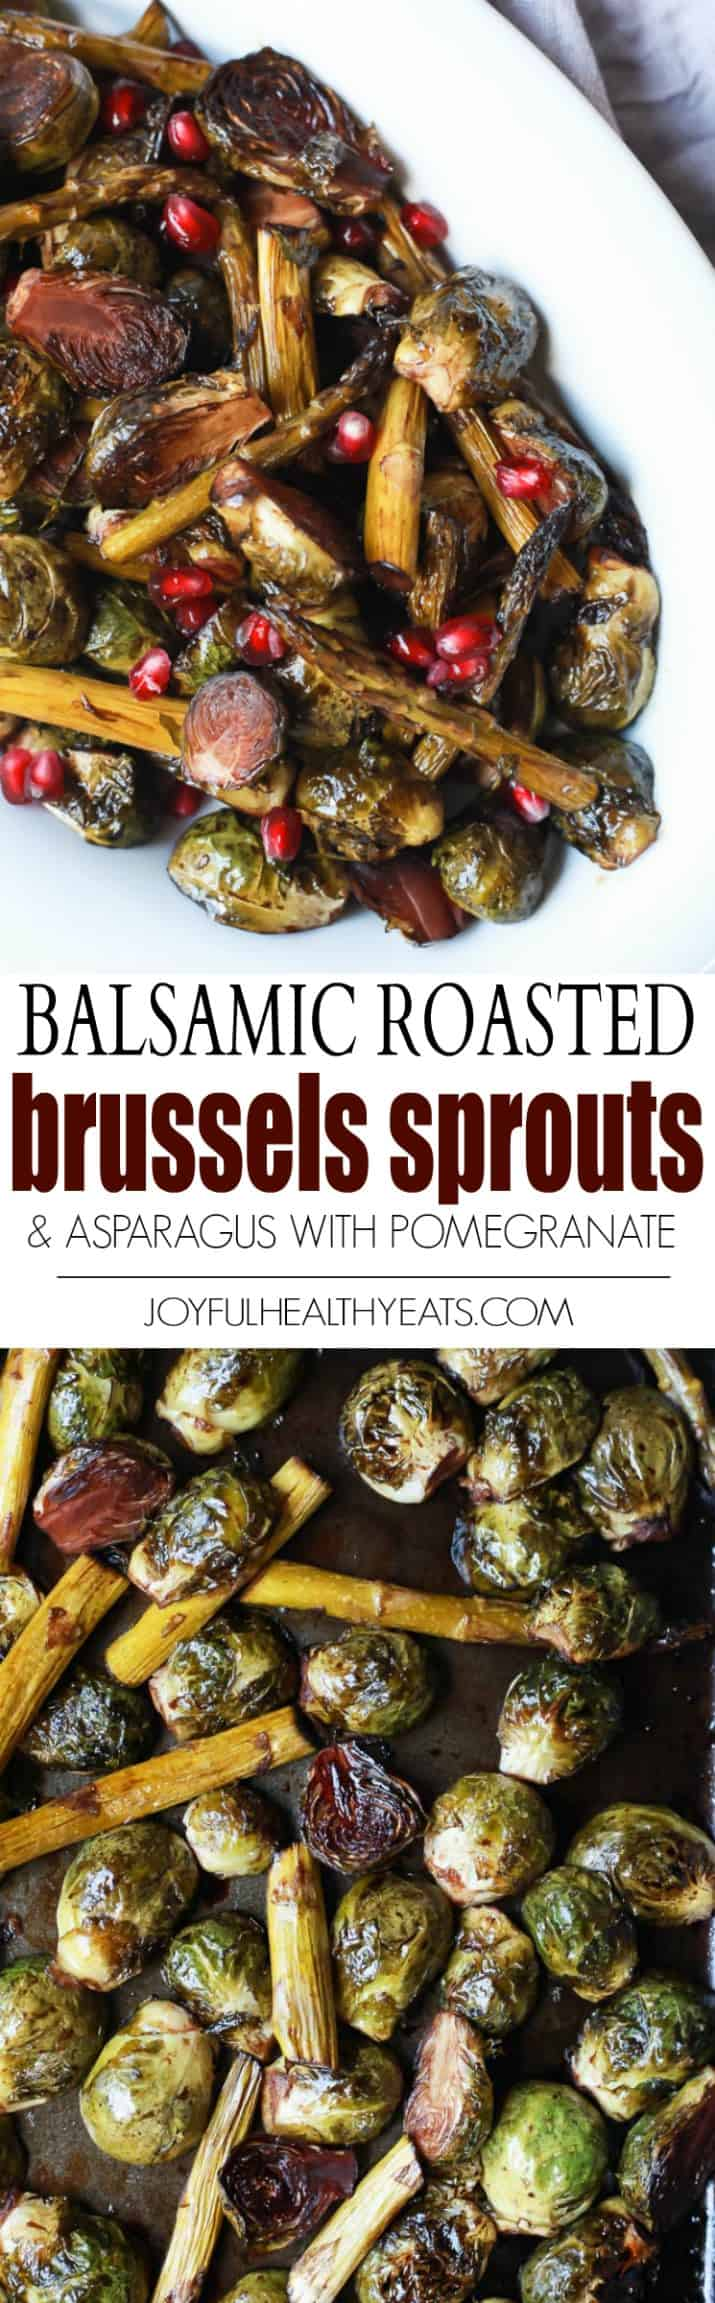 Title image for Balsamic Roasted Brussels Sprouts & Asparagus with Pomegranate